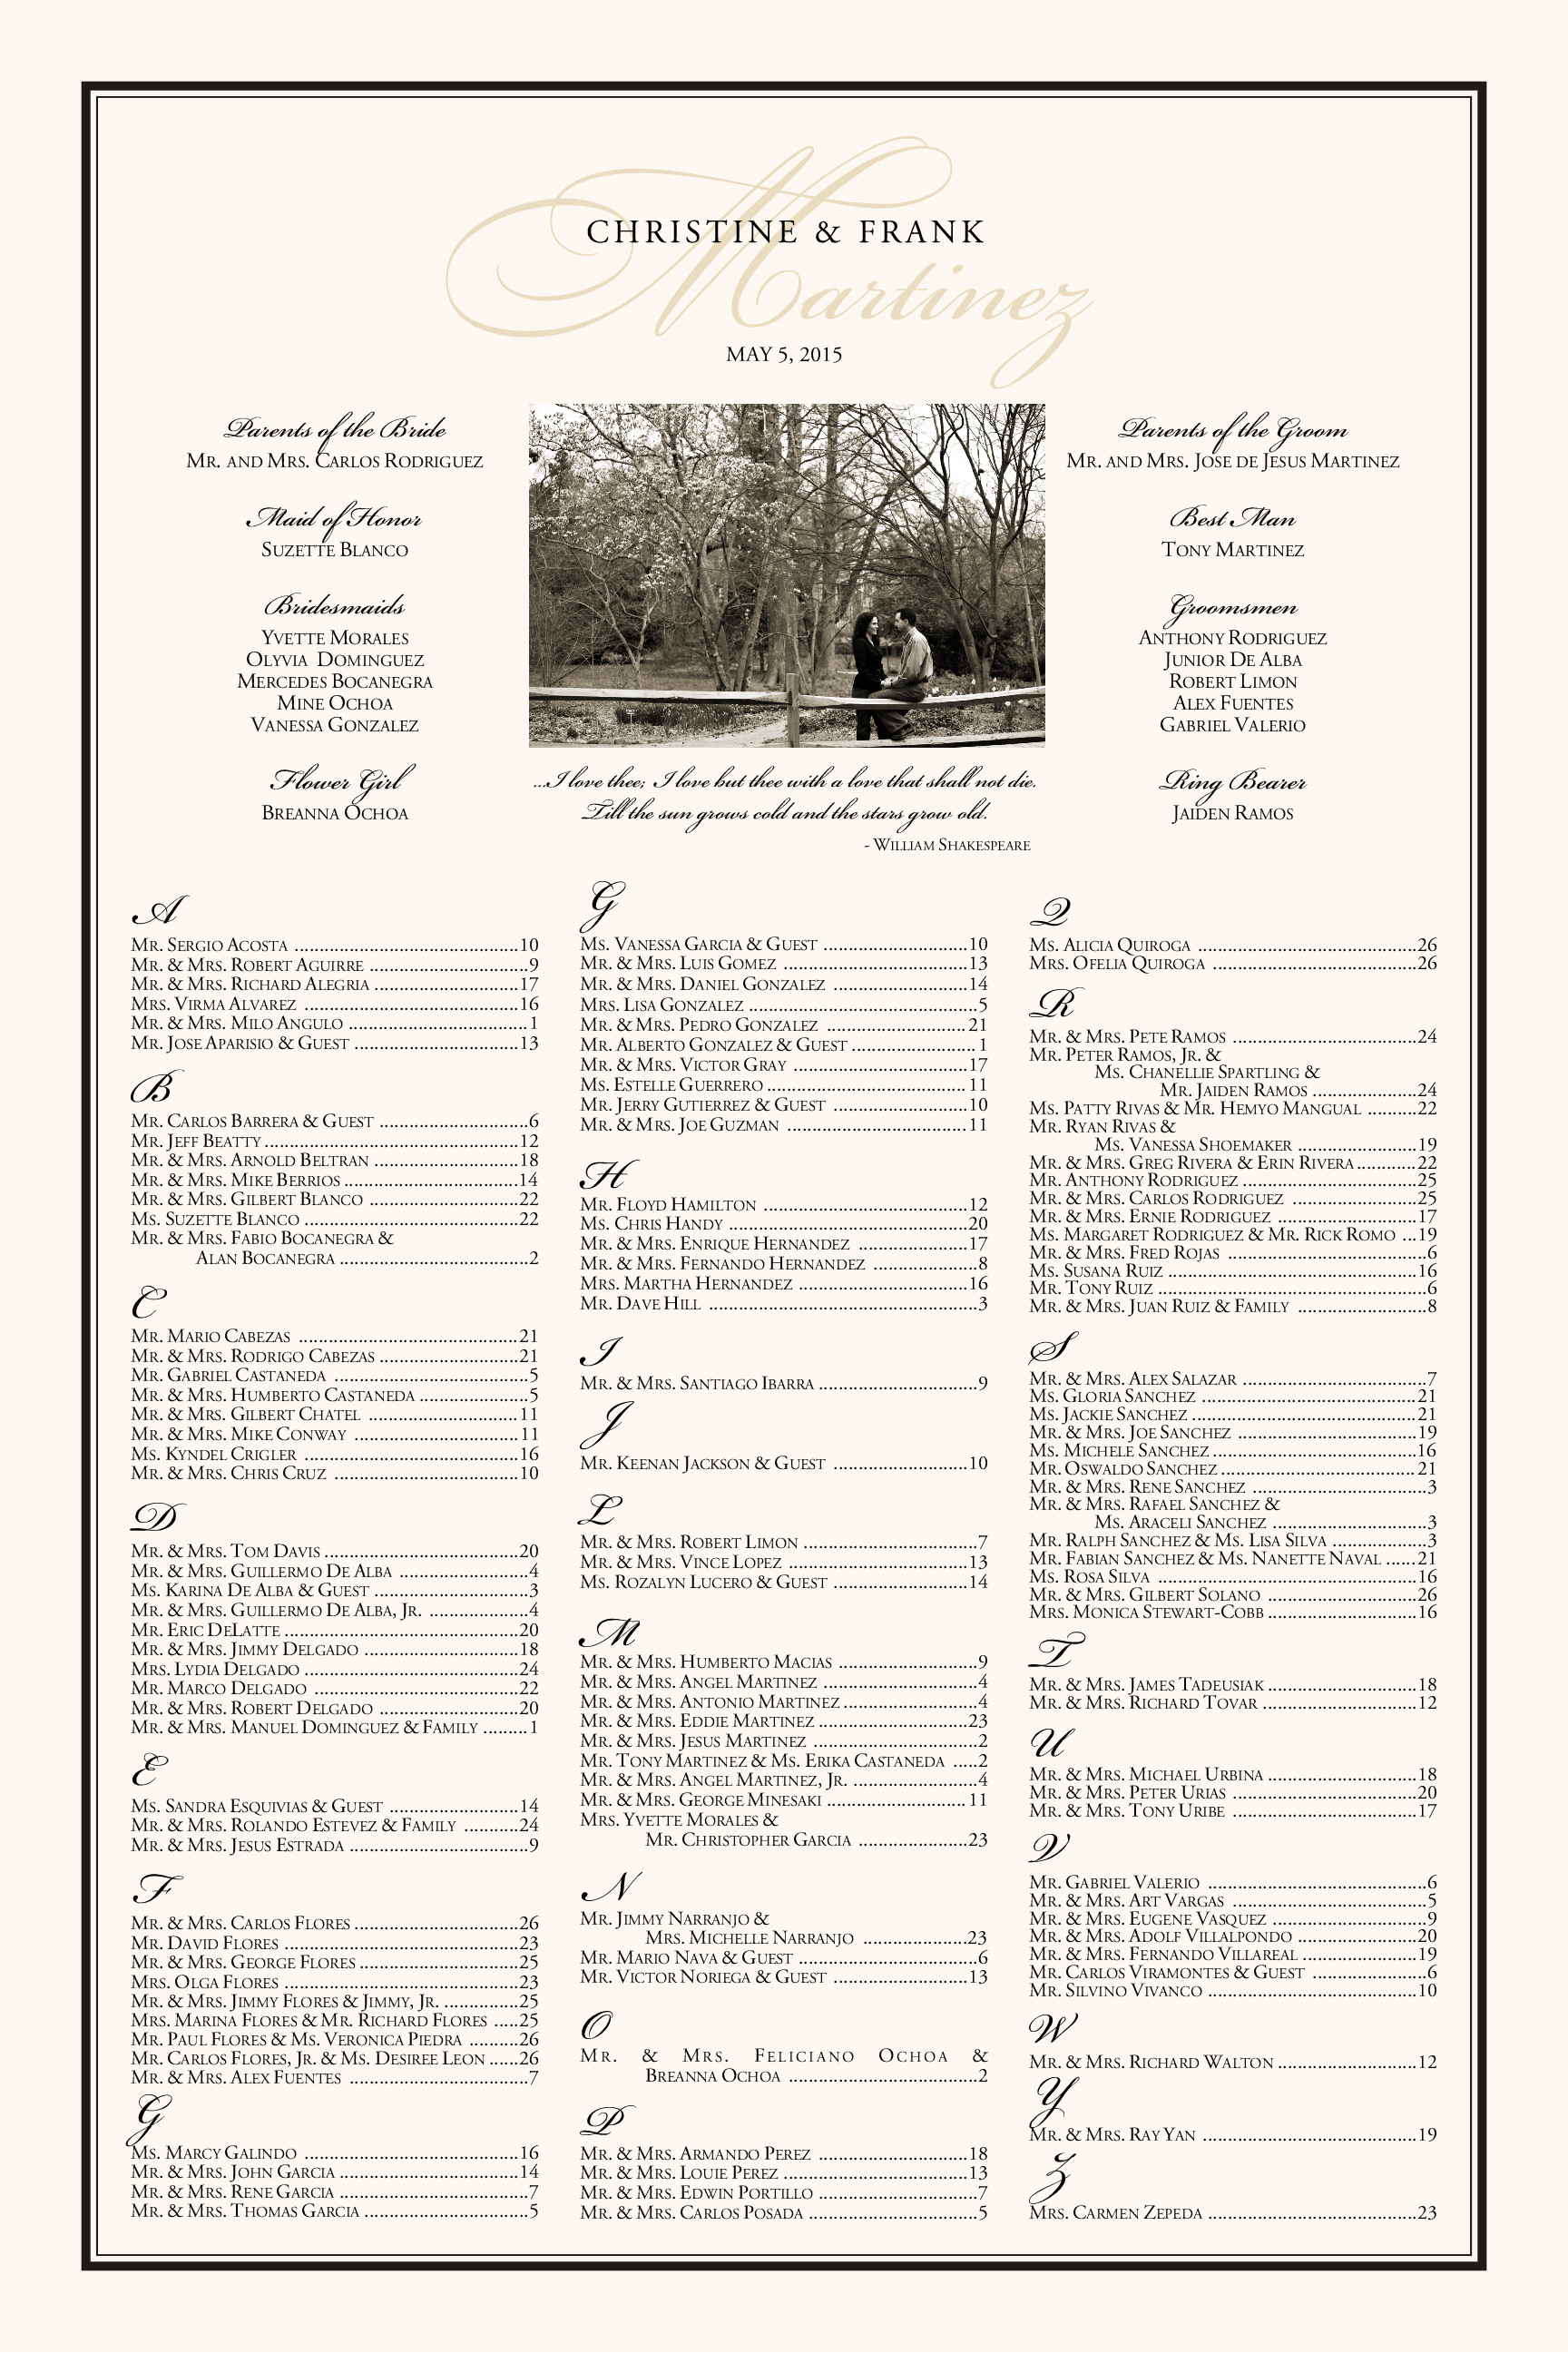 Charming romantic seating charts also photo wedding chart arrangement rh documentsanddesigns